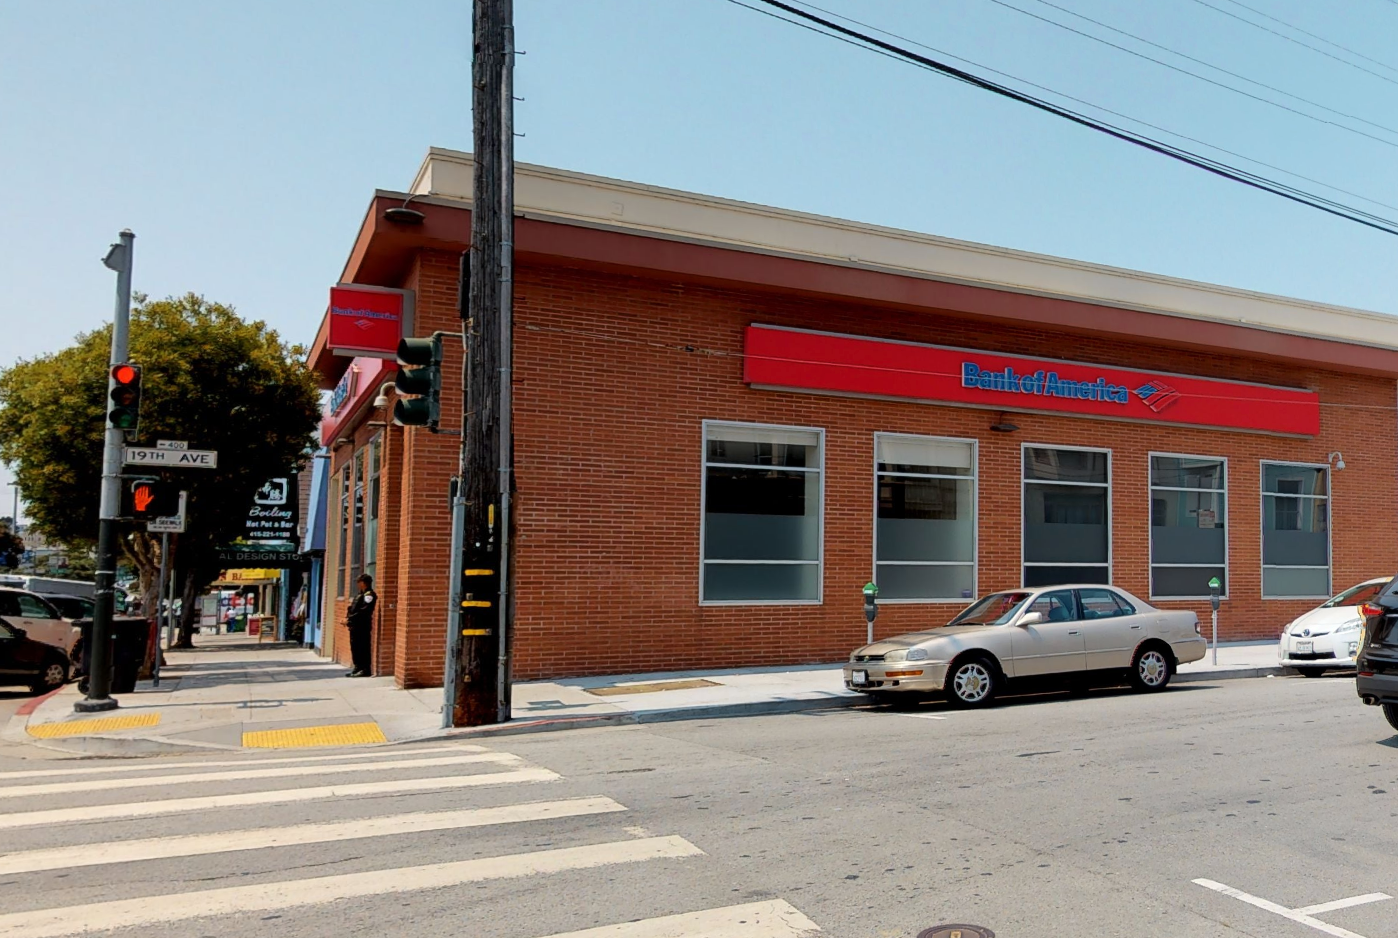 Bank of America financial center with walk-up ATM | 5500 Geary Blvd, San Francisco, CA 94121